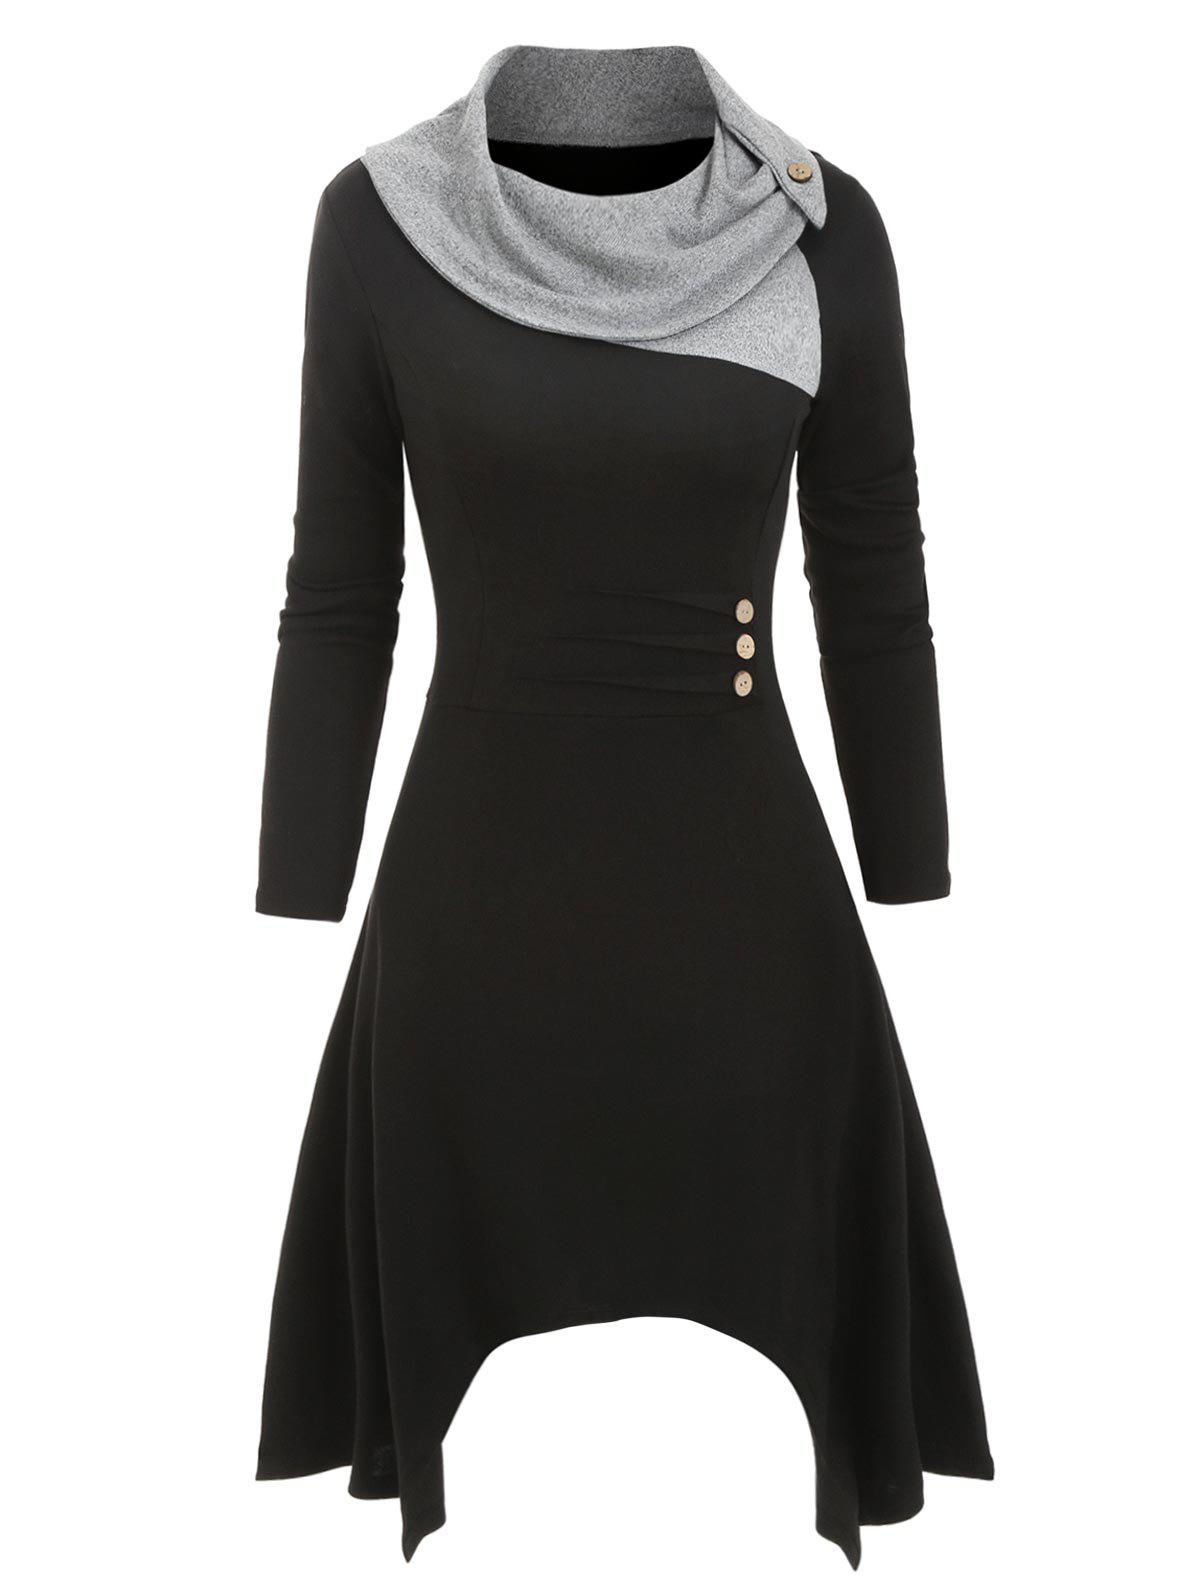 Discount Cowl Neck Mock Button Knitted Midi Dress